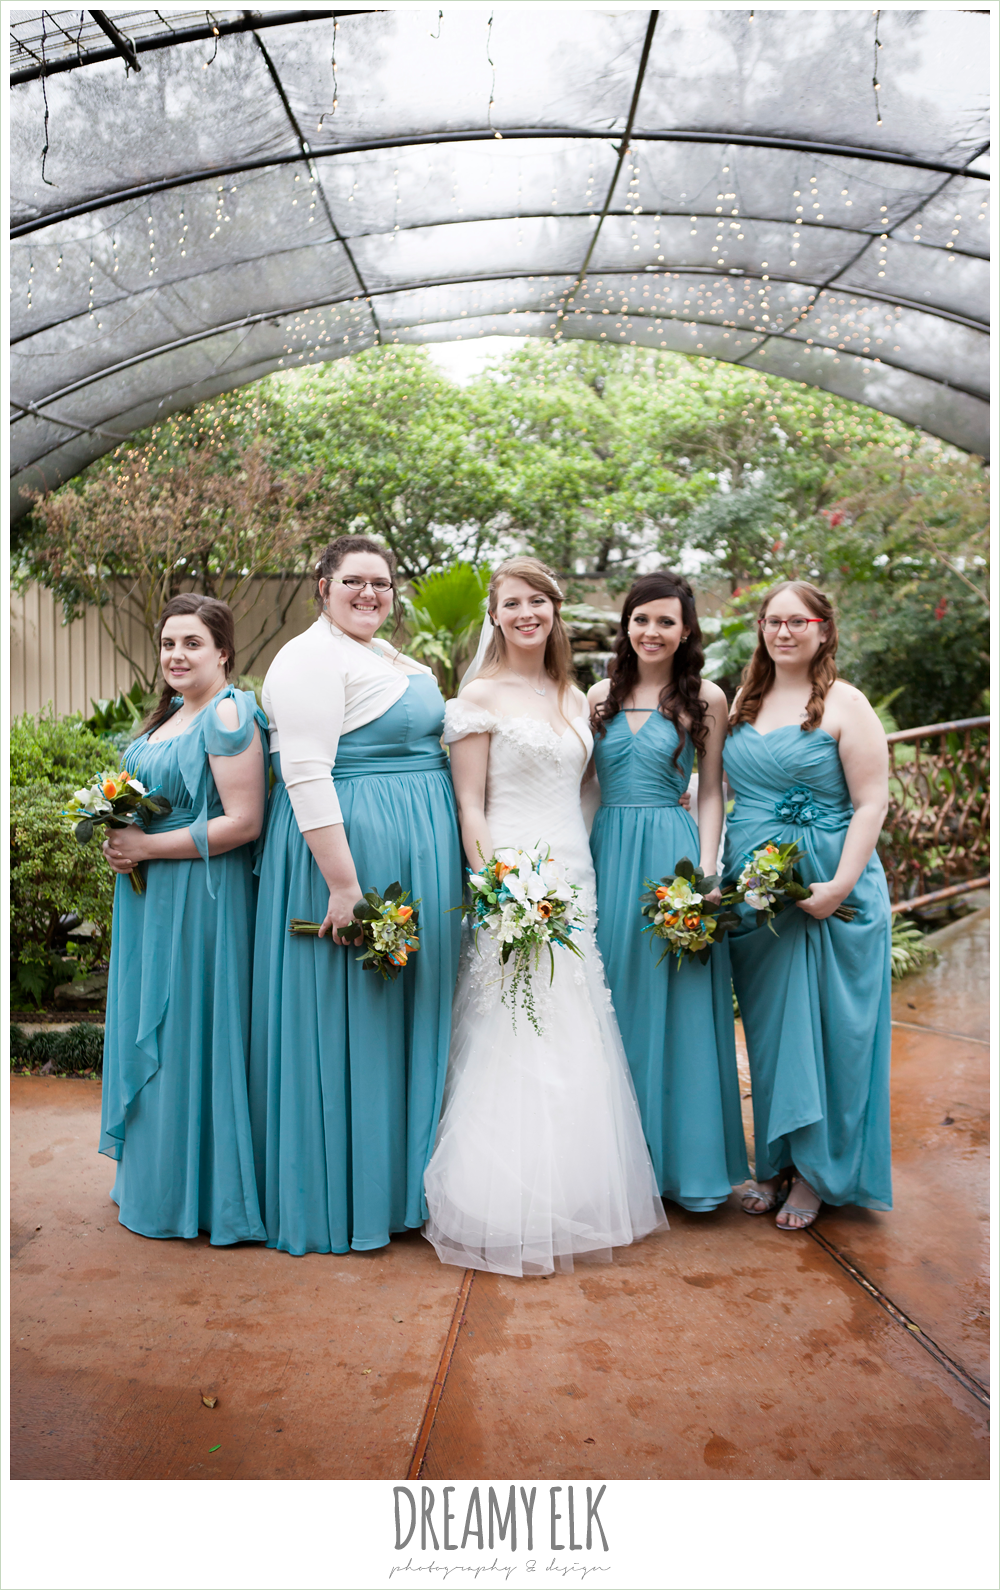 long mix and matched pool bridesmaids dresses, off the shoulder mermaid wedding dress, le jardin winter wedding {dreamy elk photography and design}